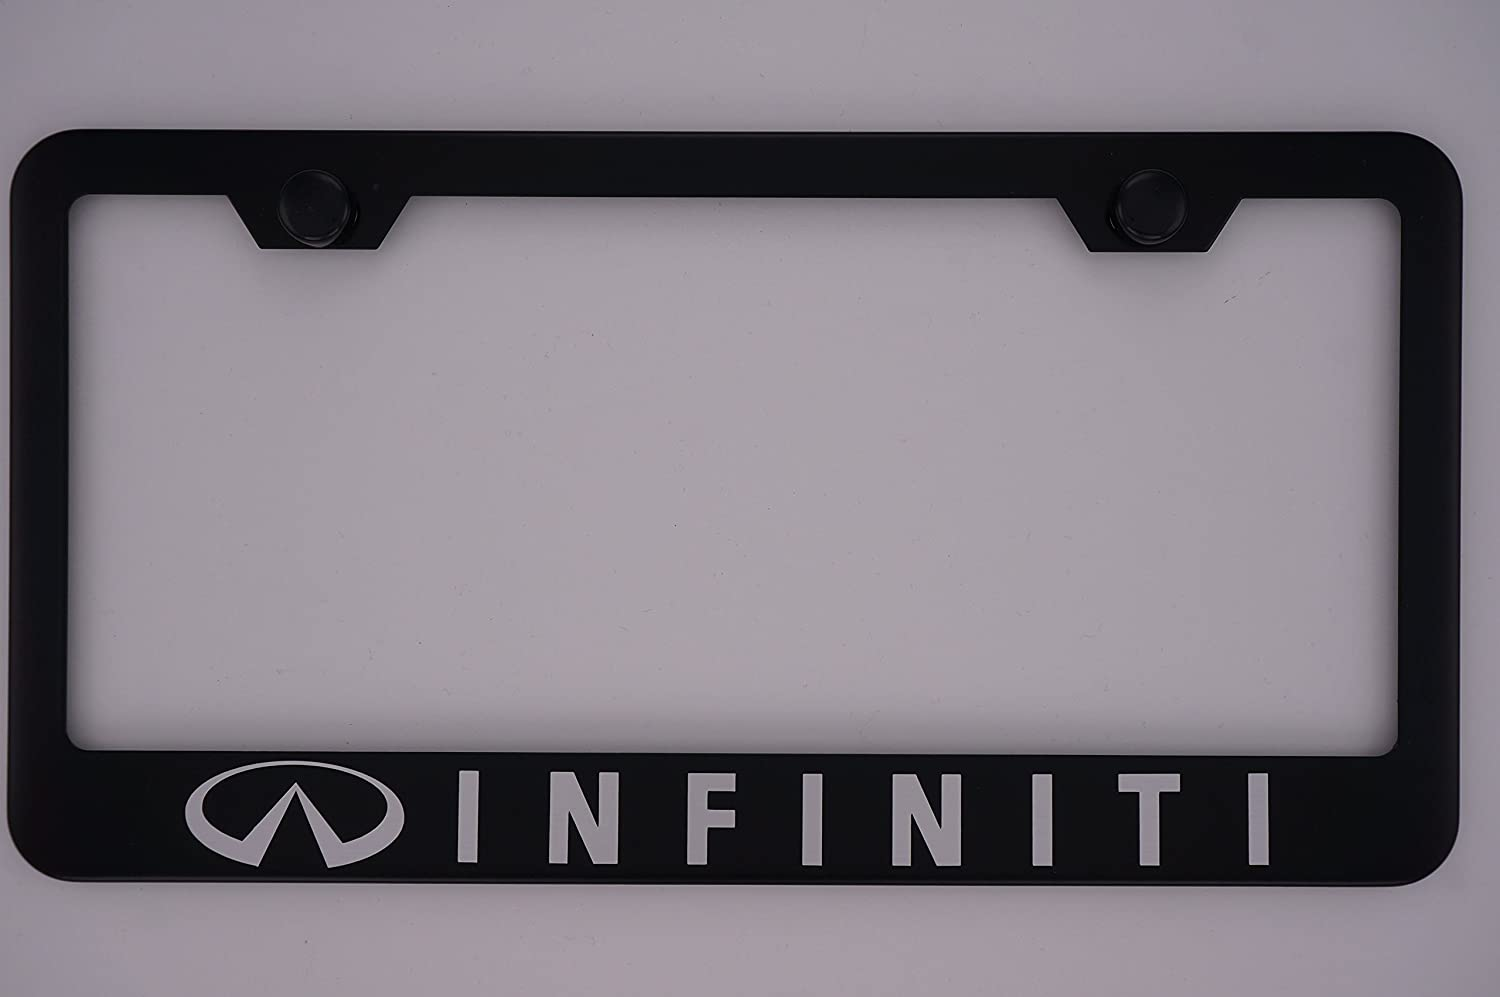 Infiniti Black License Plate Frame with Caps